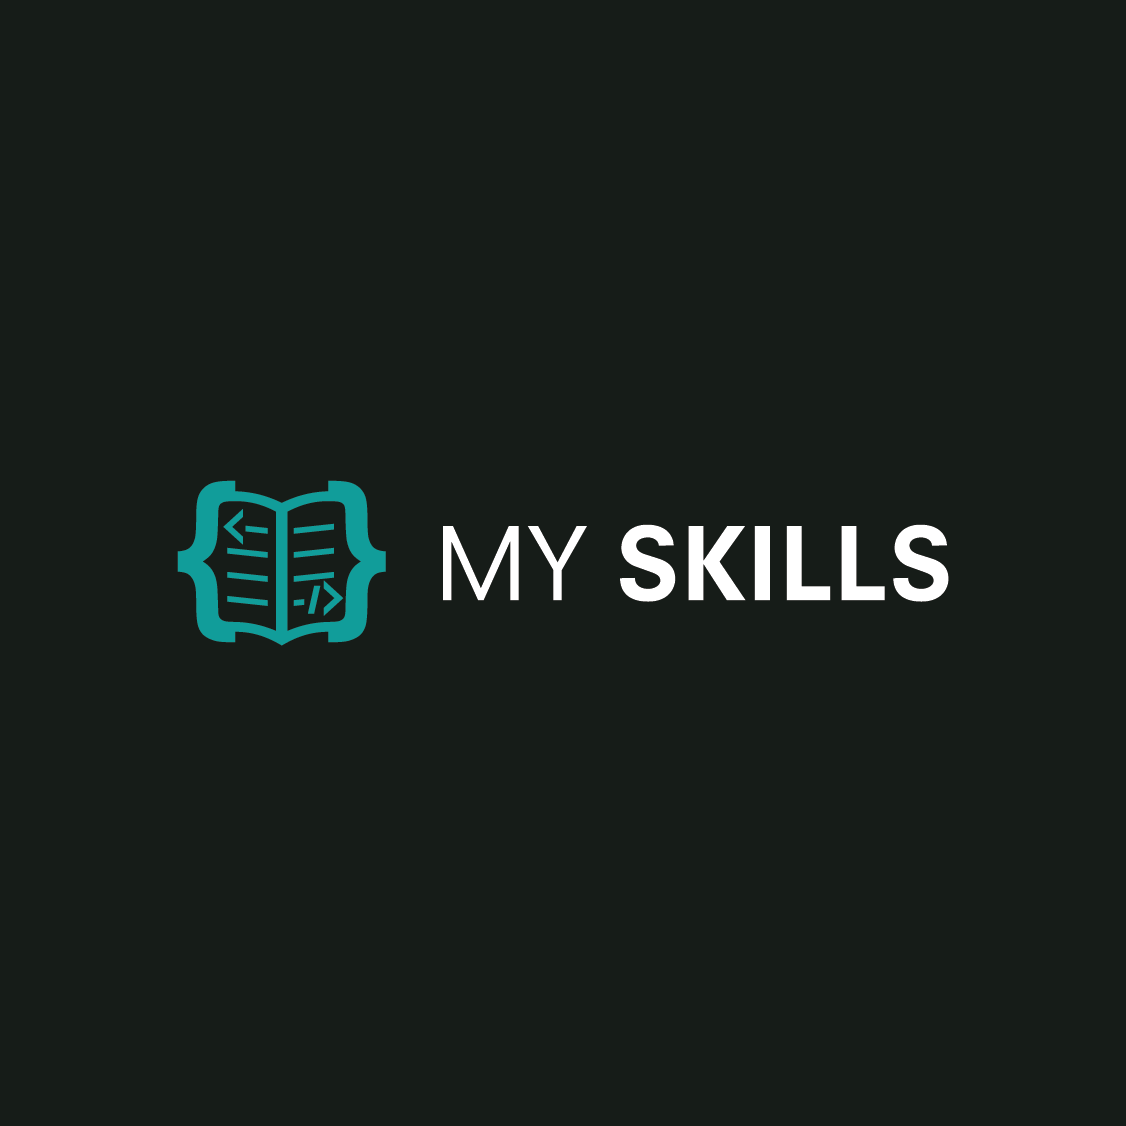 A Classy and modern logo for technology training company